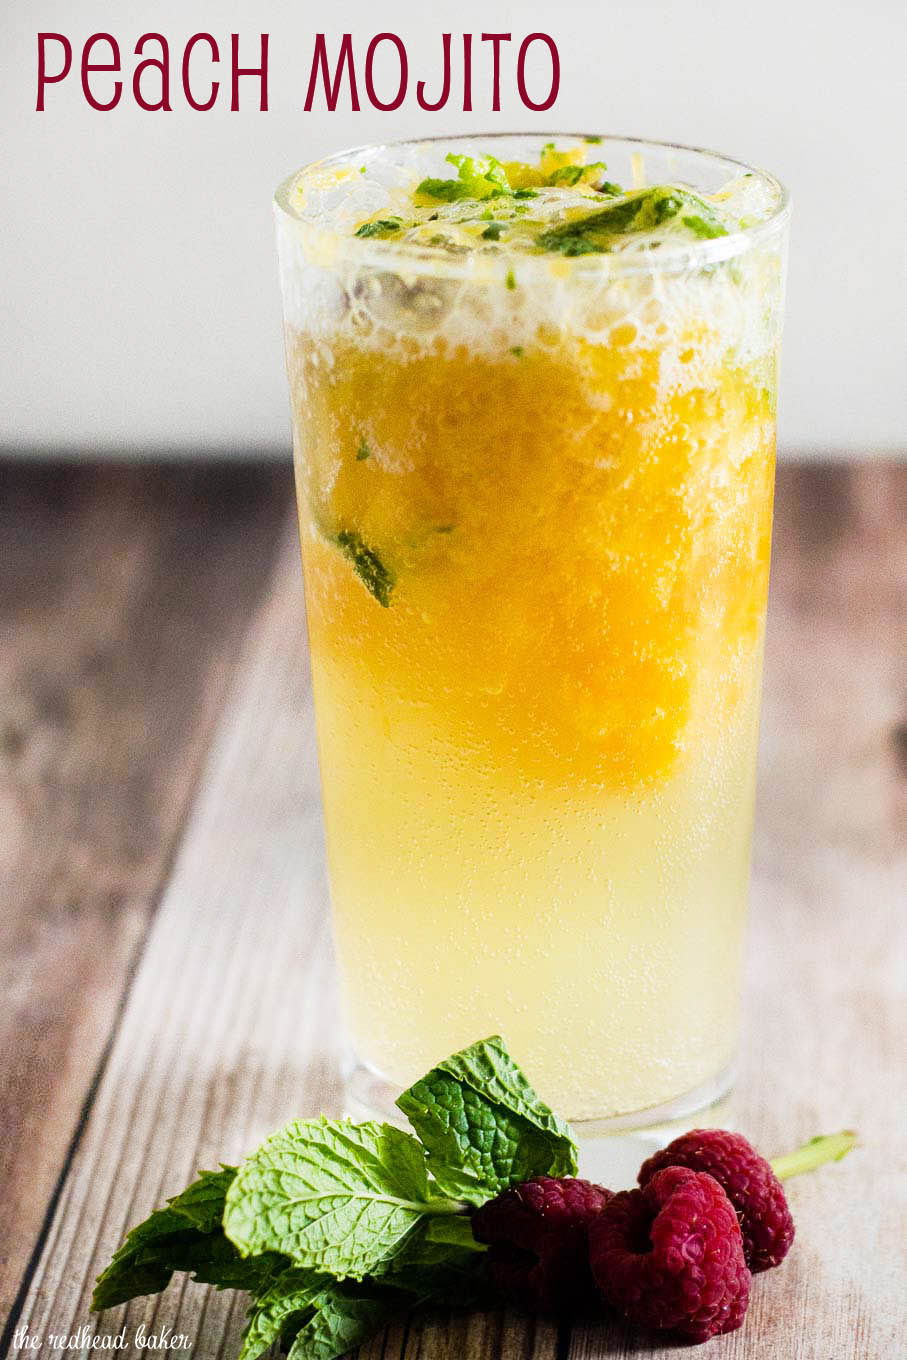 Summer is almost here! Enjoy a refreshing peach mojito cocktail and enter to win a $200 Target gift card to help yourself get ready for summer!